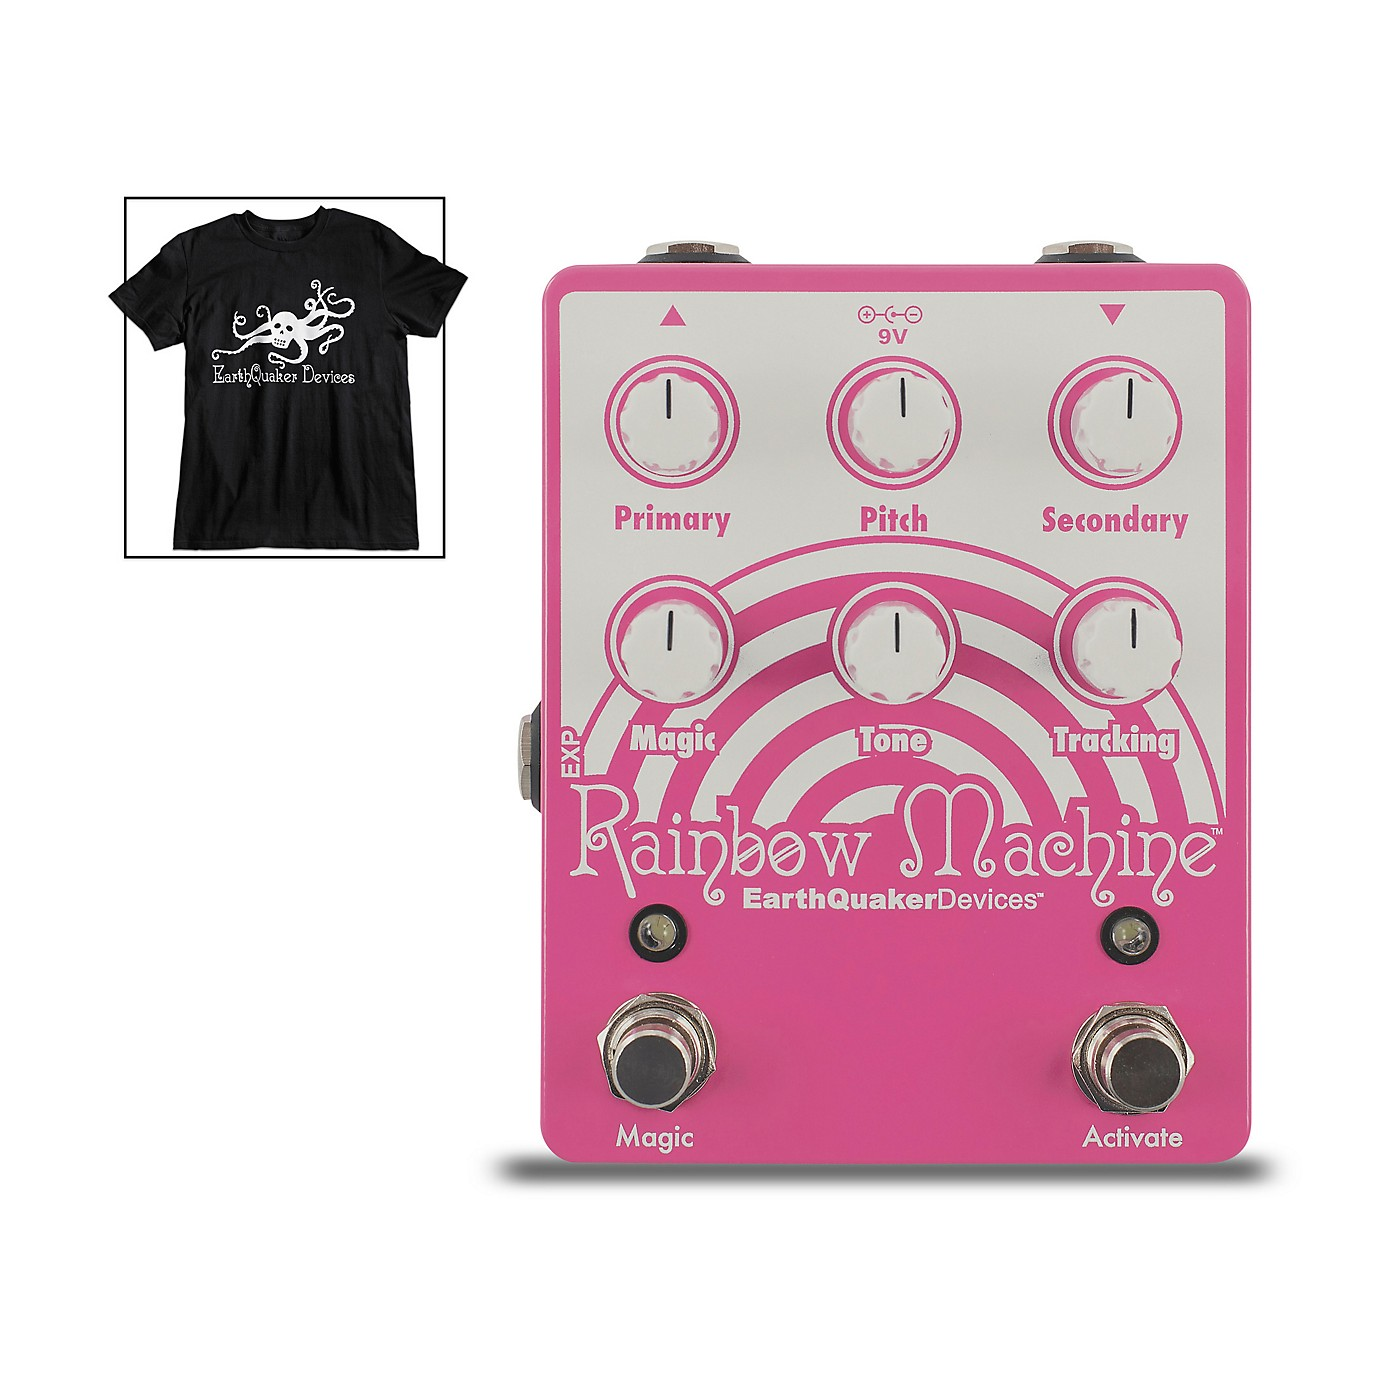 Earthquaker Devices Rainbow Machine V2 Polyphonic Pitch Shifter Effects Pedal and Octoskull T-Shirt Large Black thumbnail